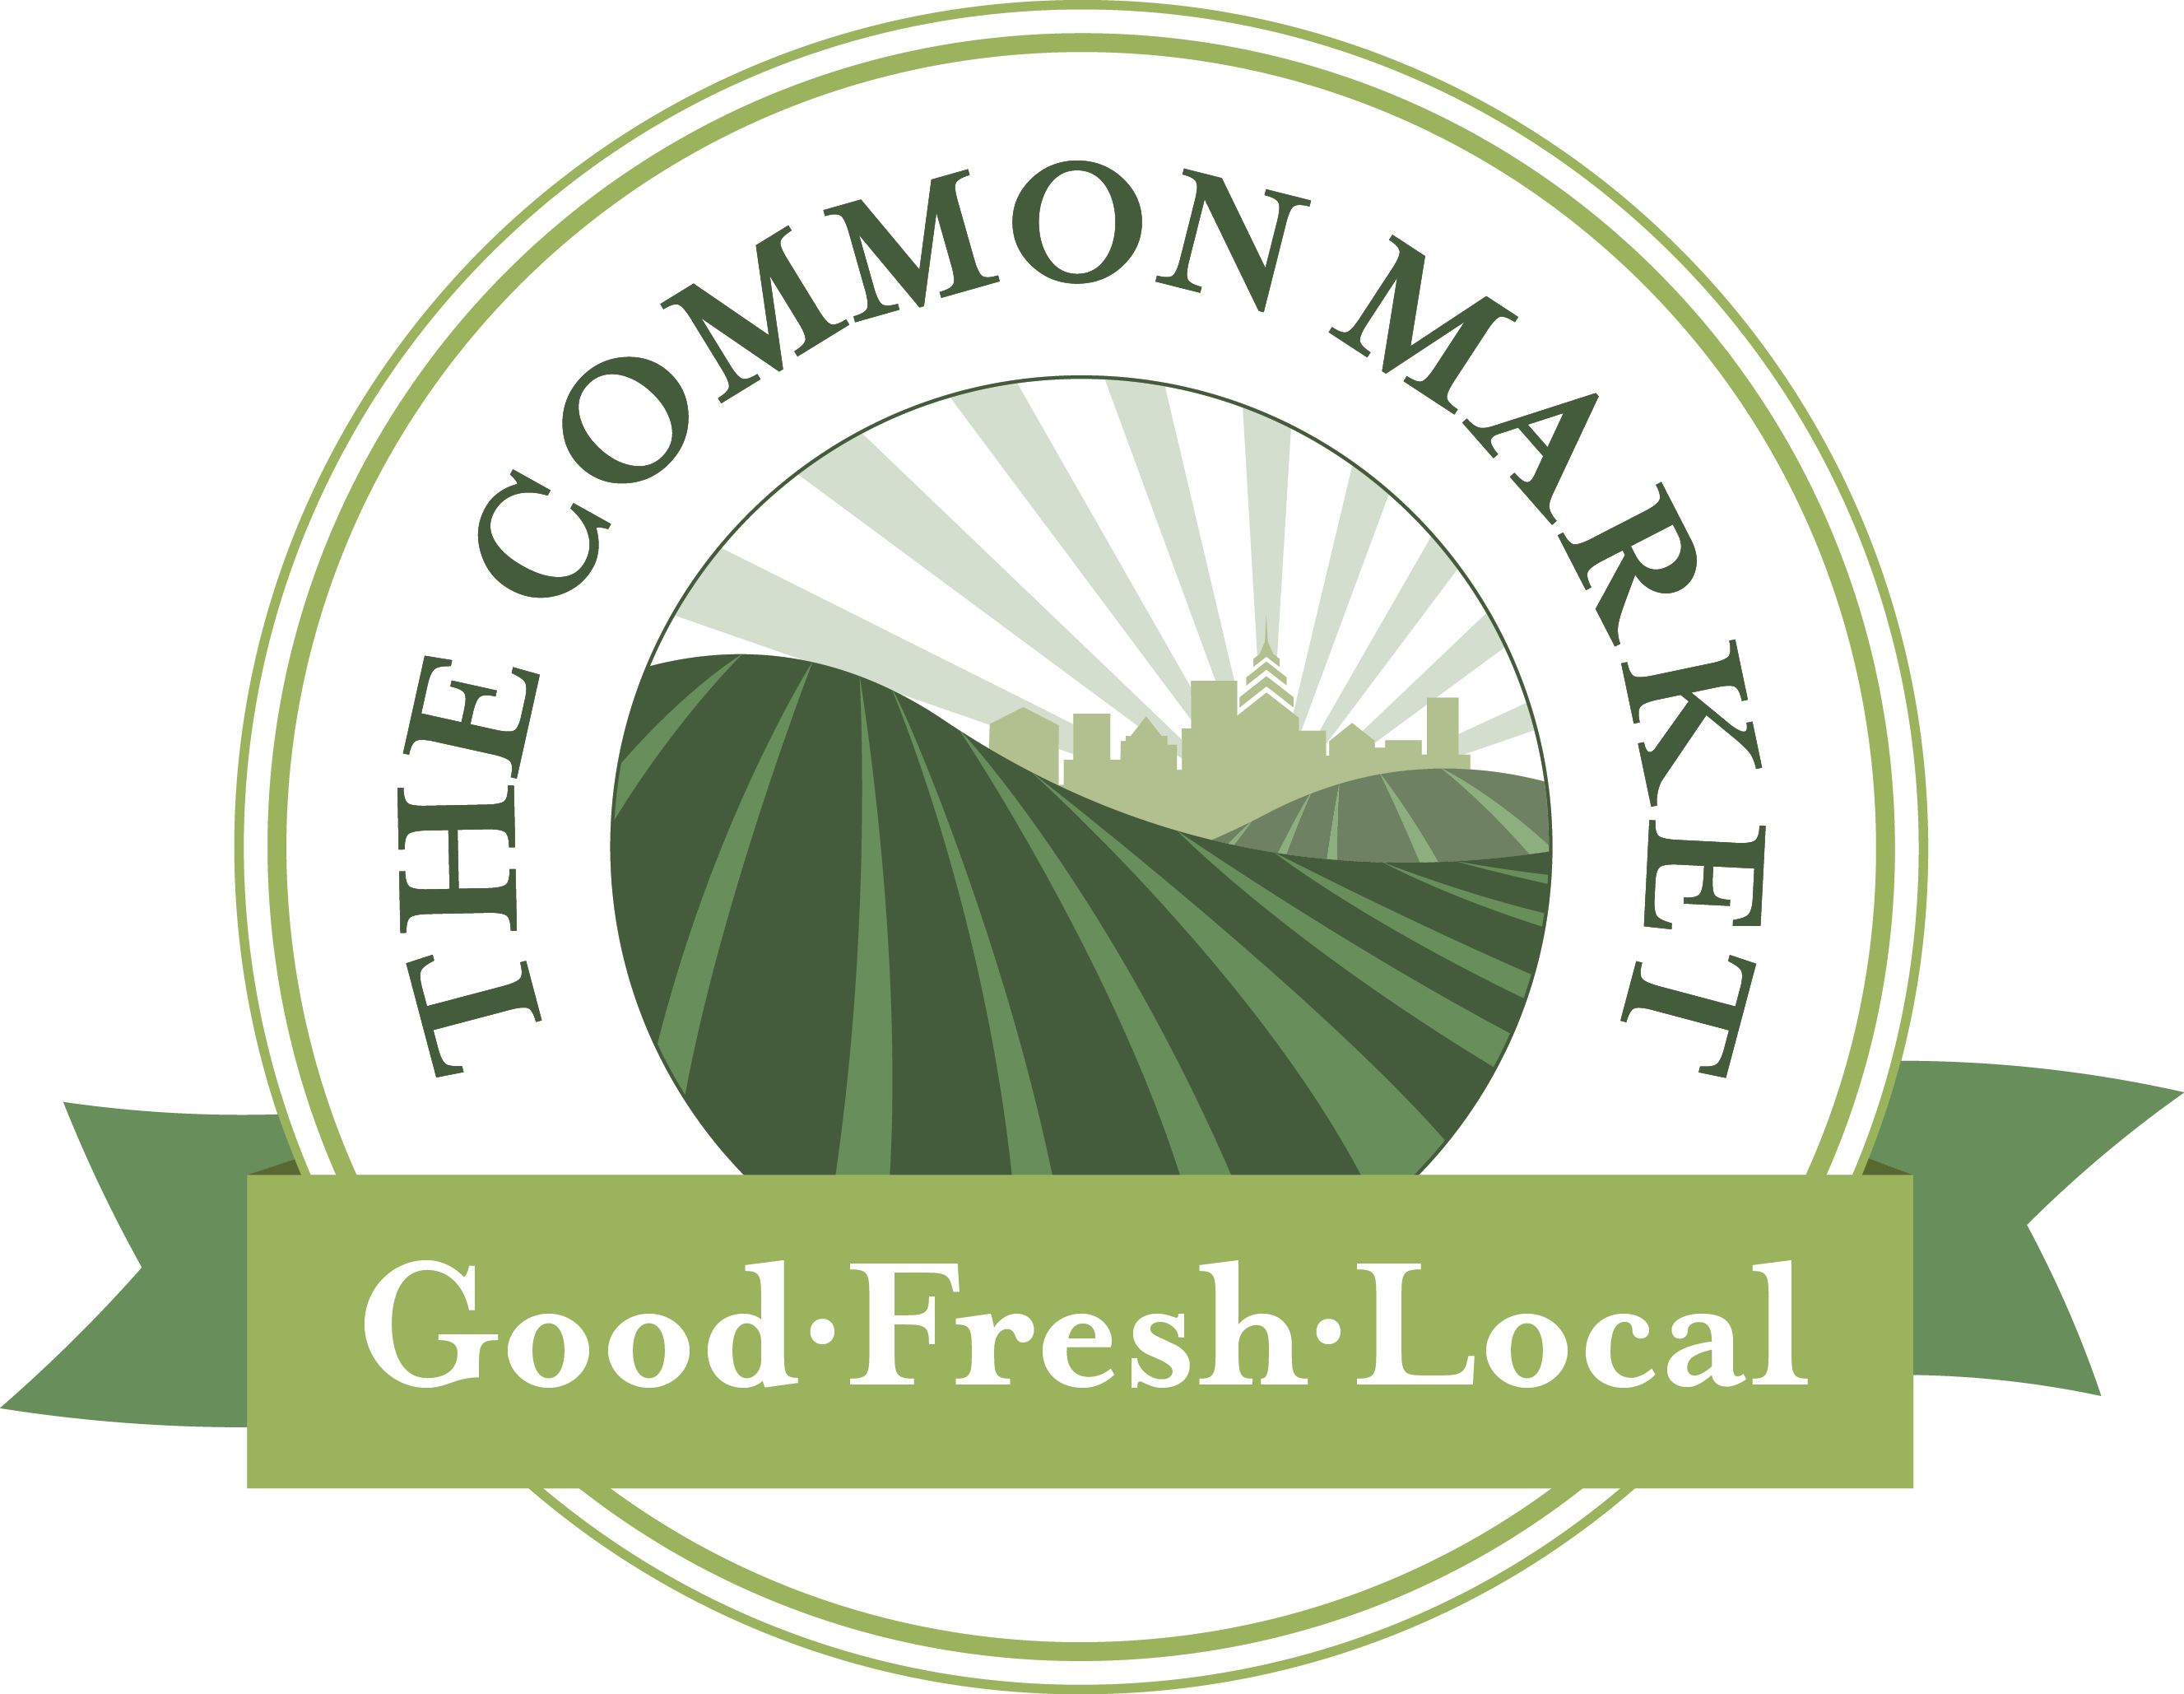 The Common Market:  Good, Fresh, Local